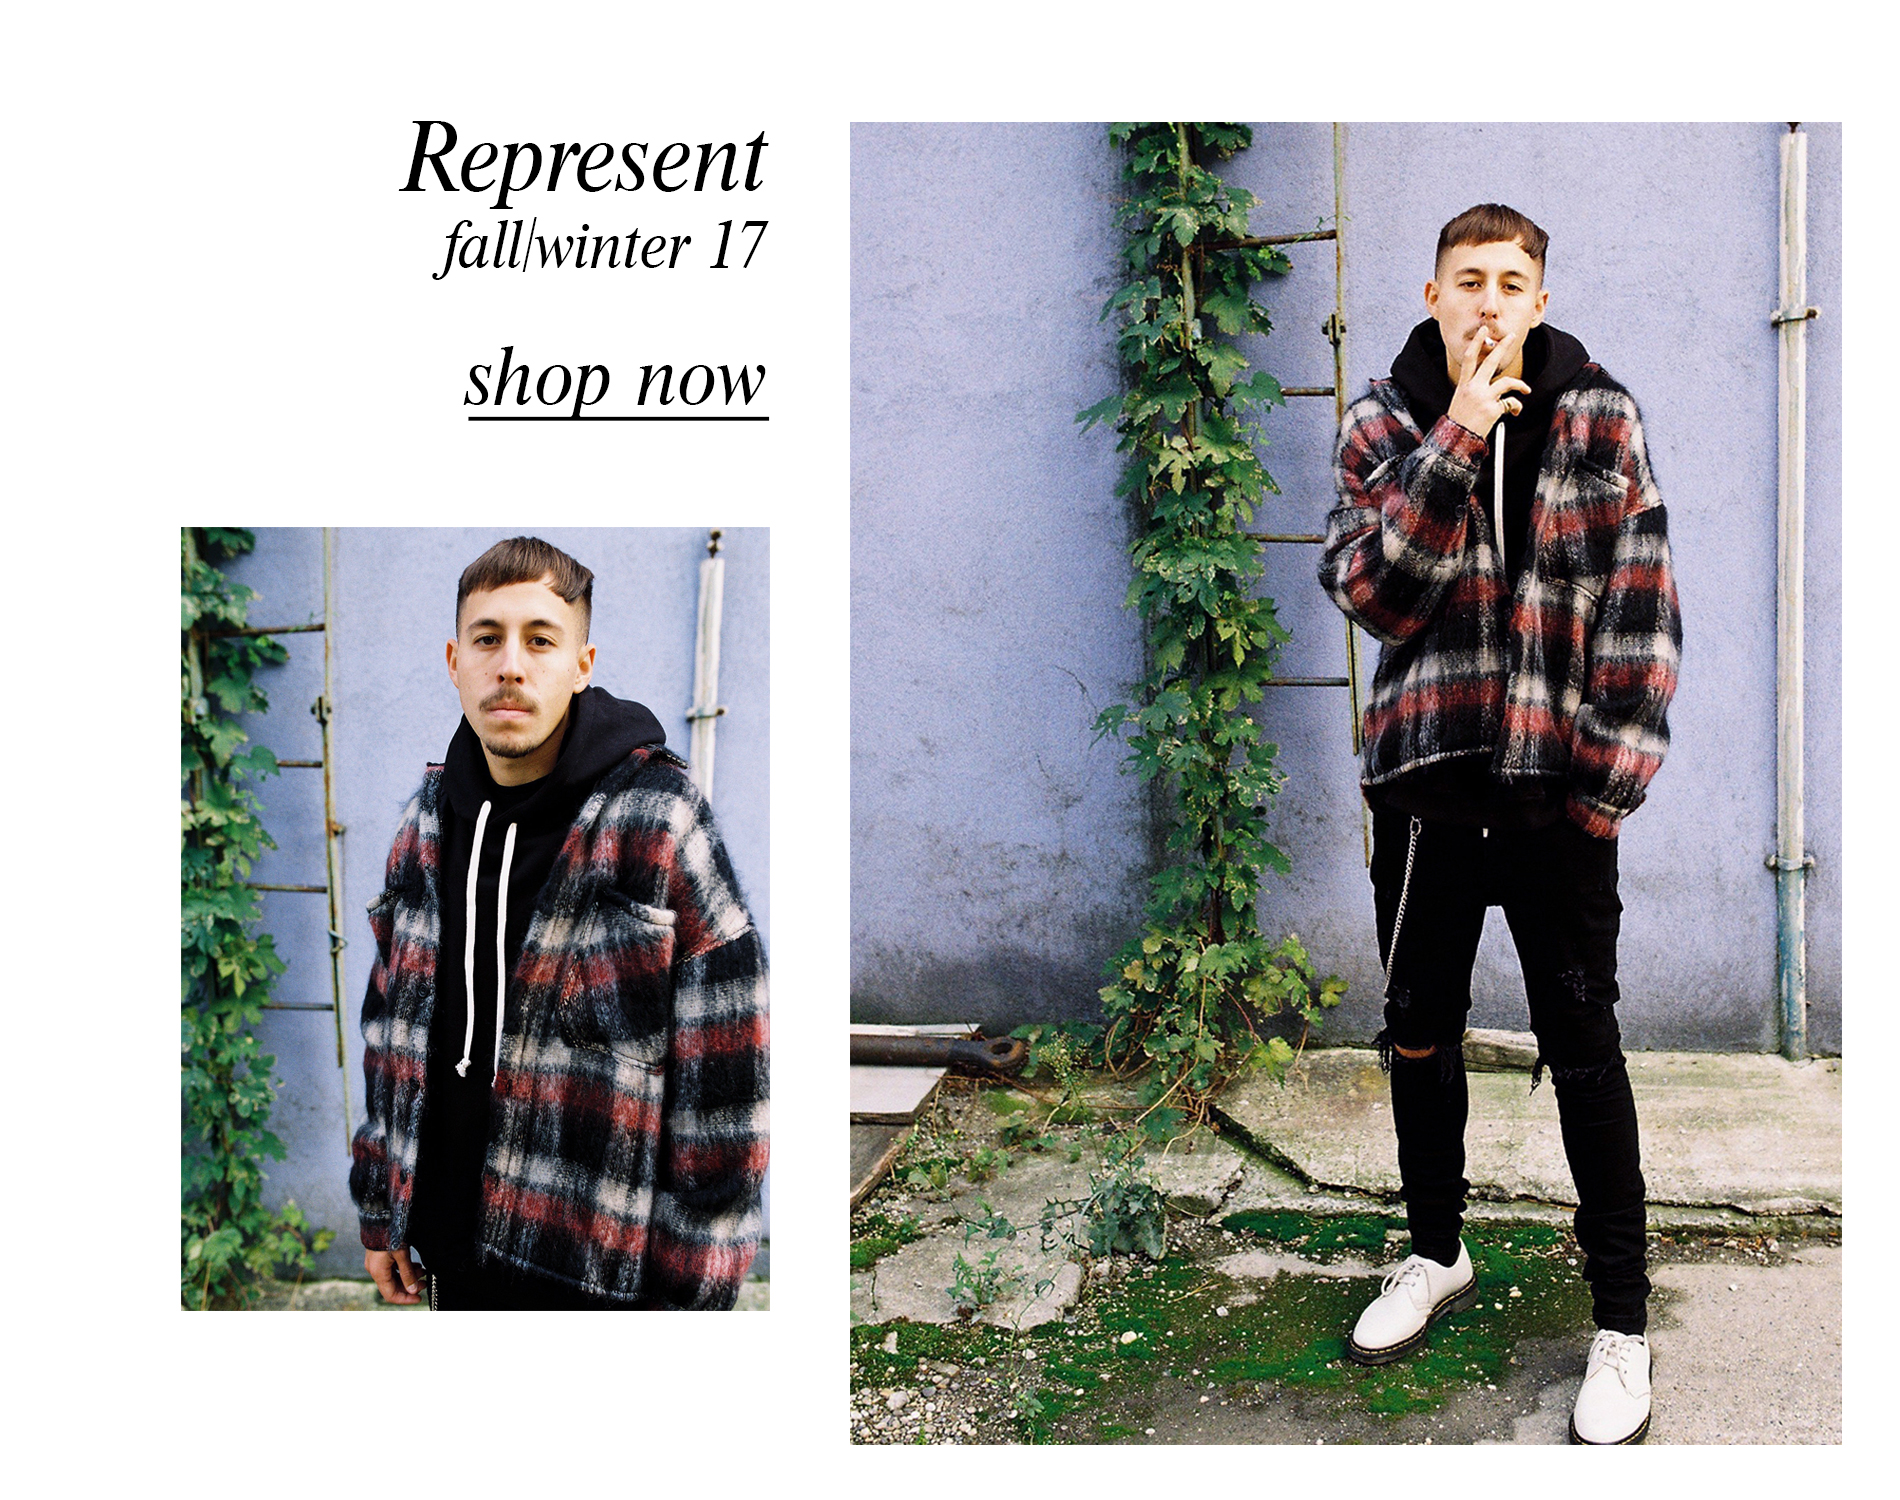 http://shatle.com/sk/products/brand/9/represent